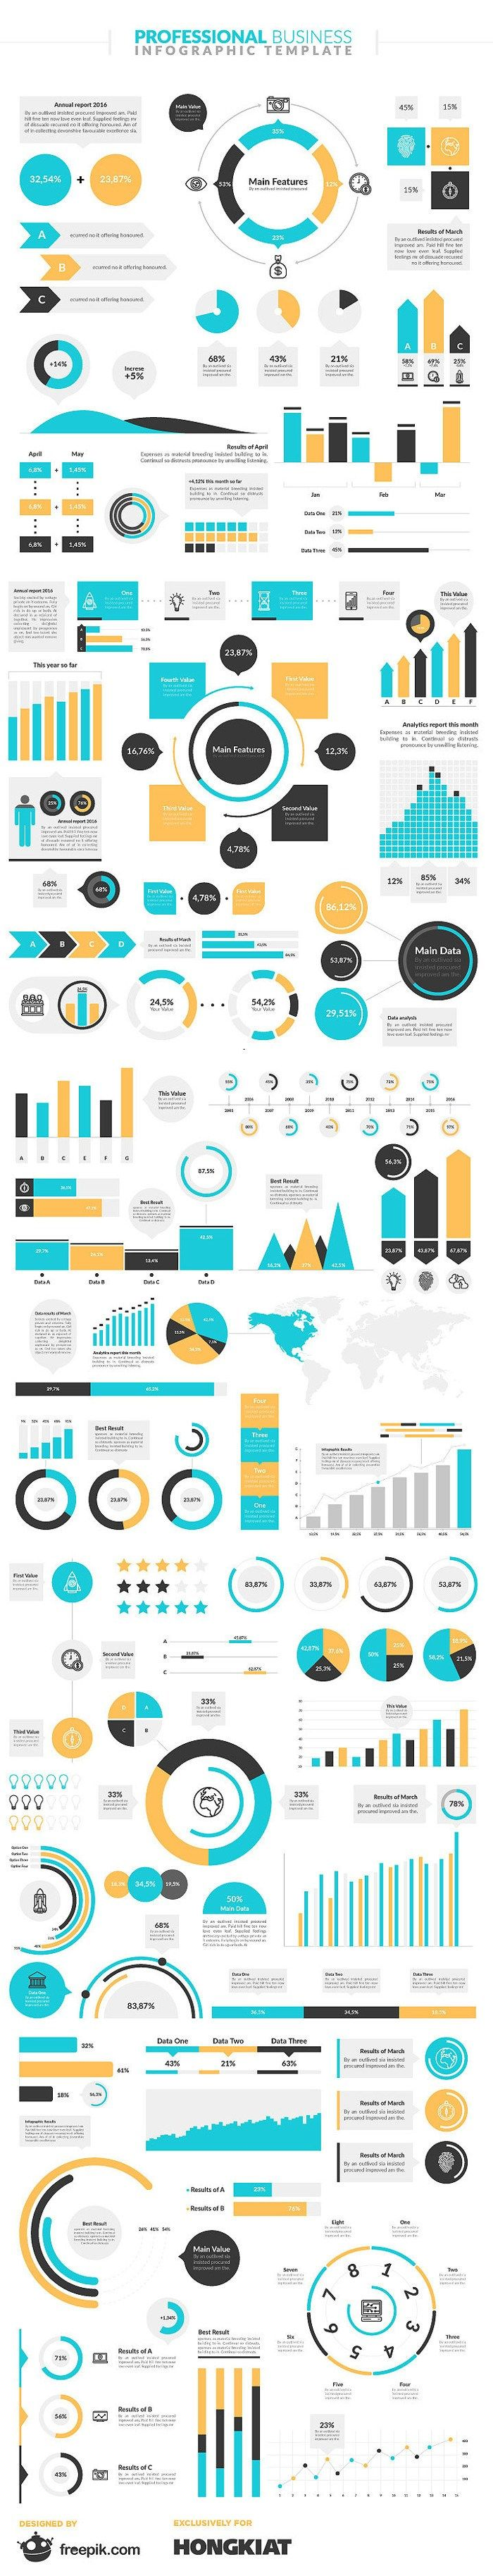 Professional Business Infographic Template by Freepik